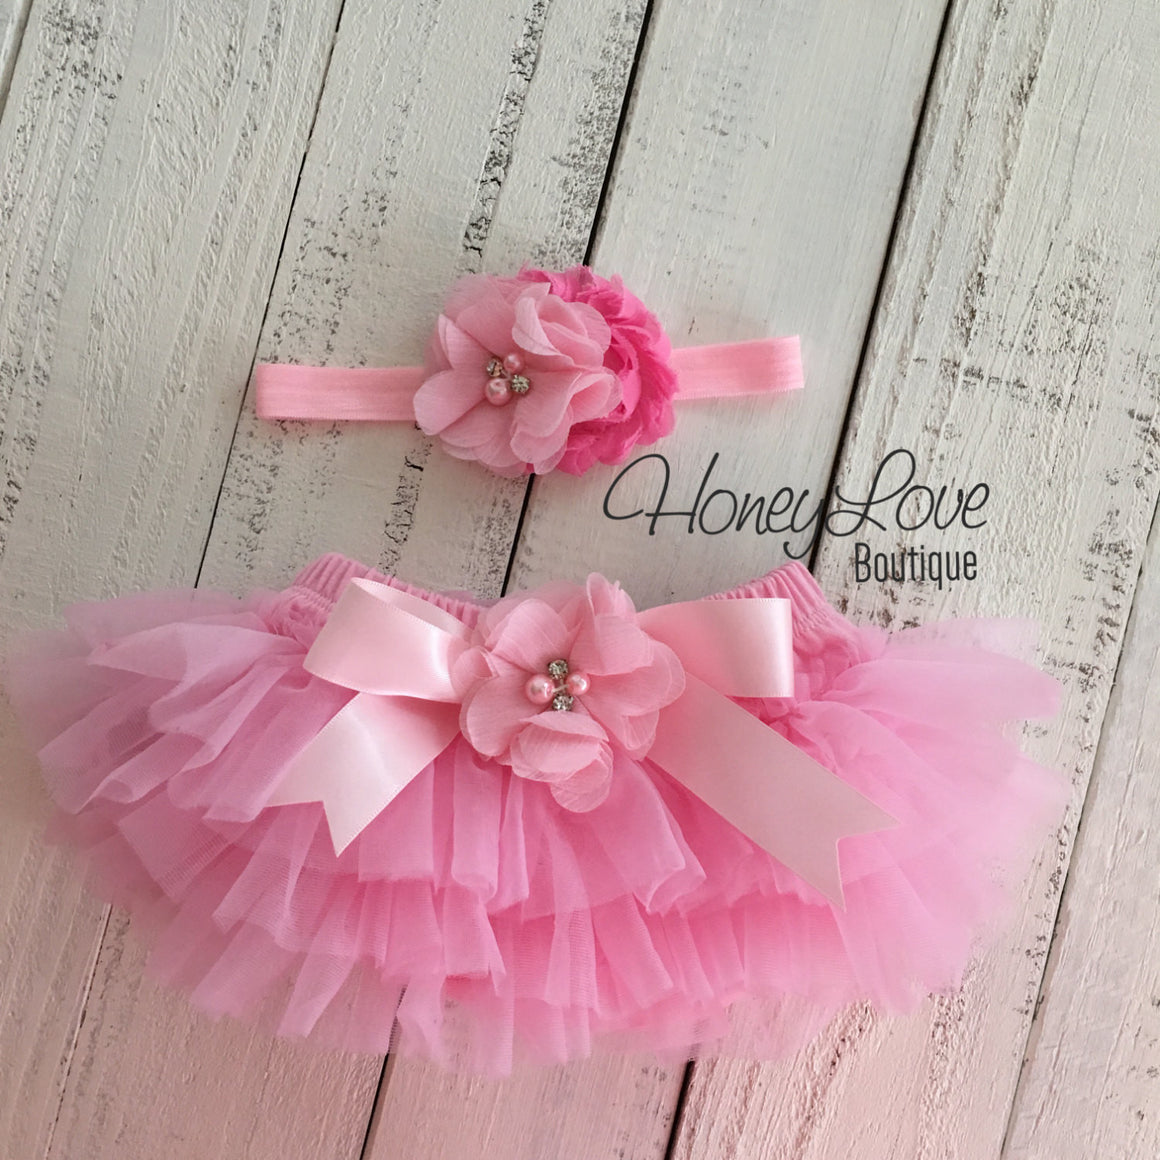 Light Pink tutu skirt bloomers and Light Pink/Bubblegum Pink flower headband - Embellished bloomers - HoneyLoveBoutique